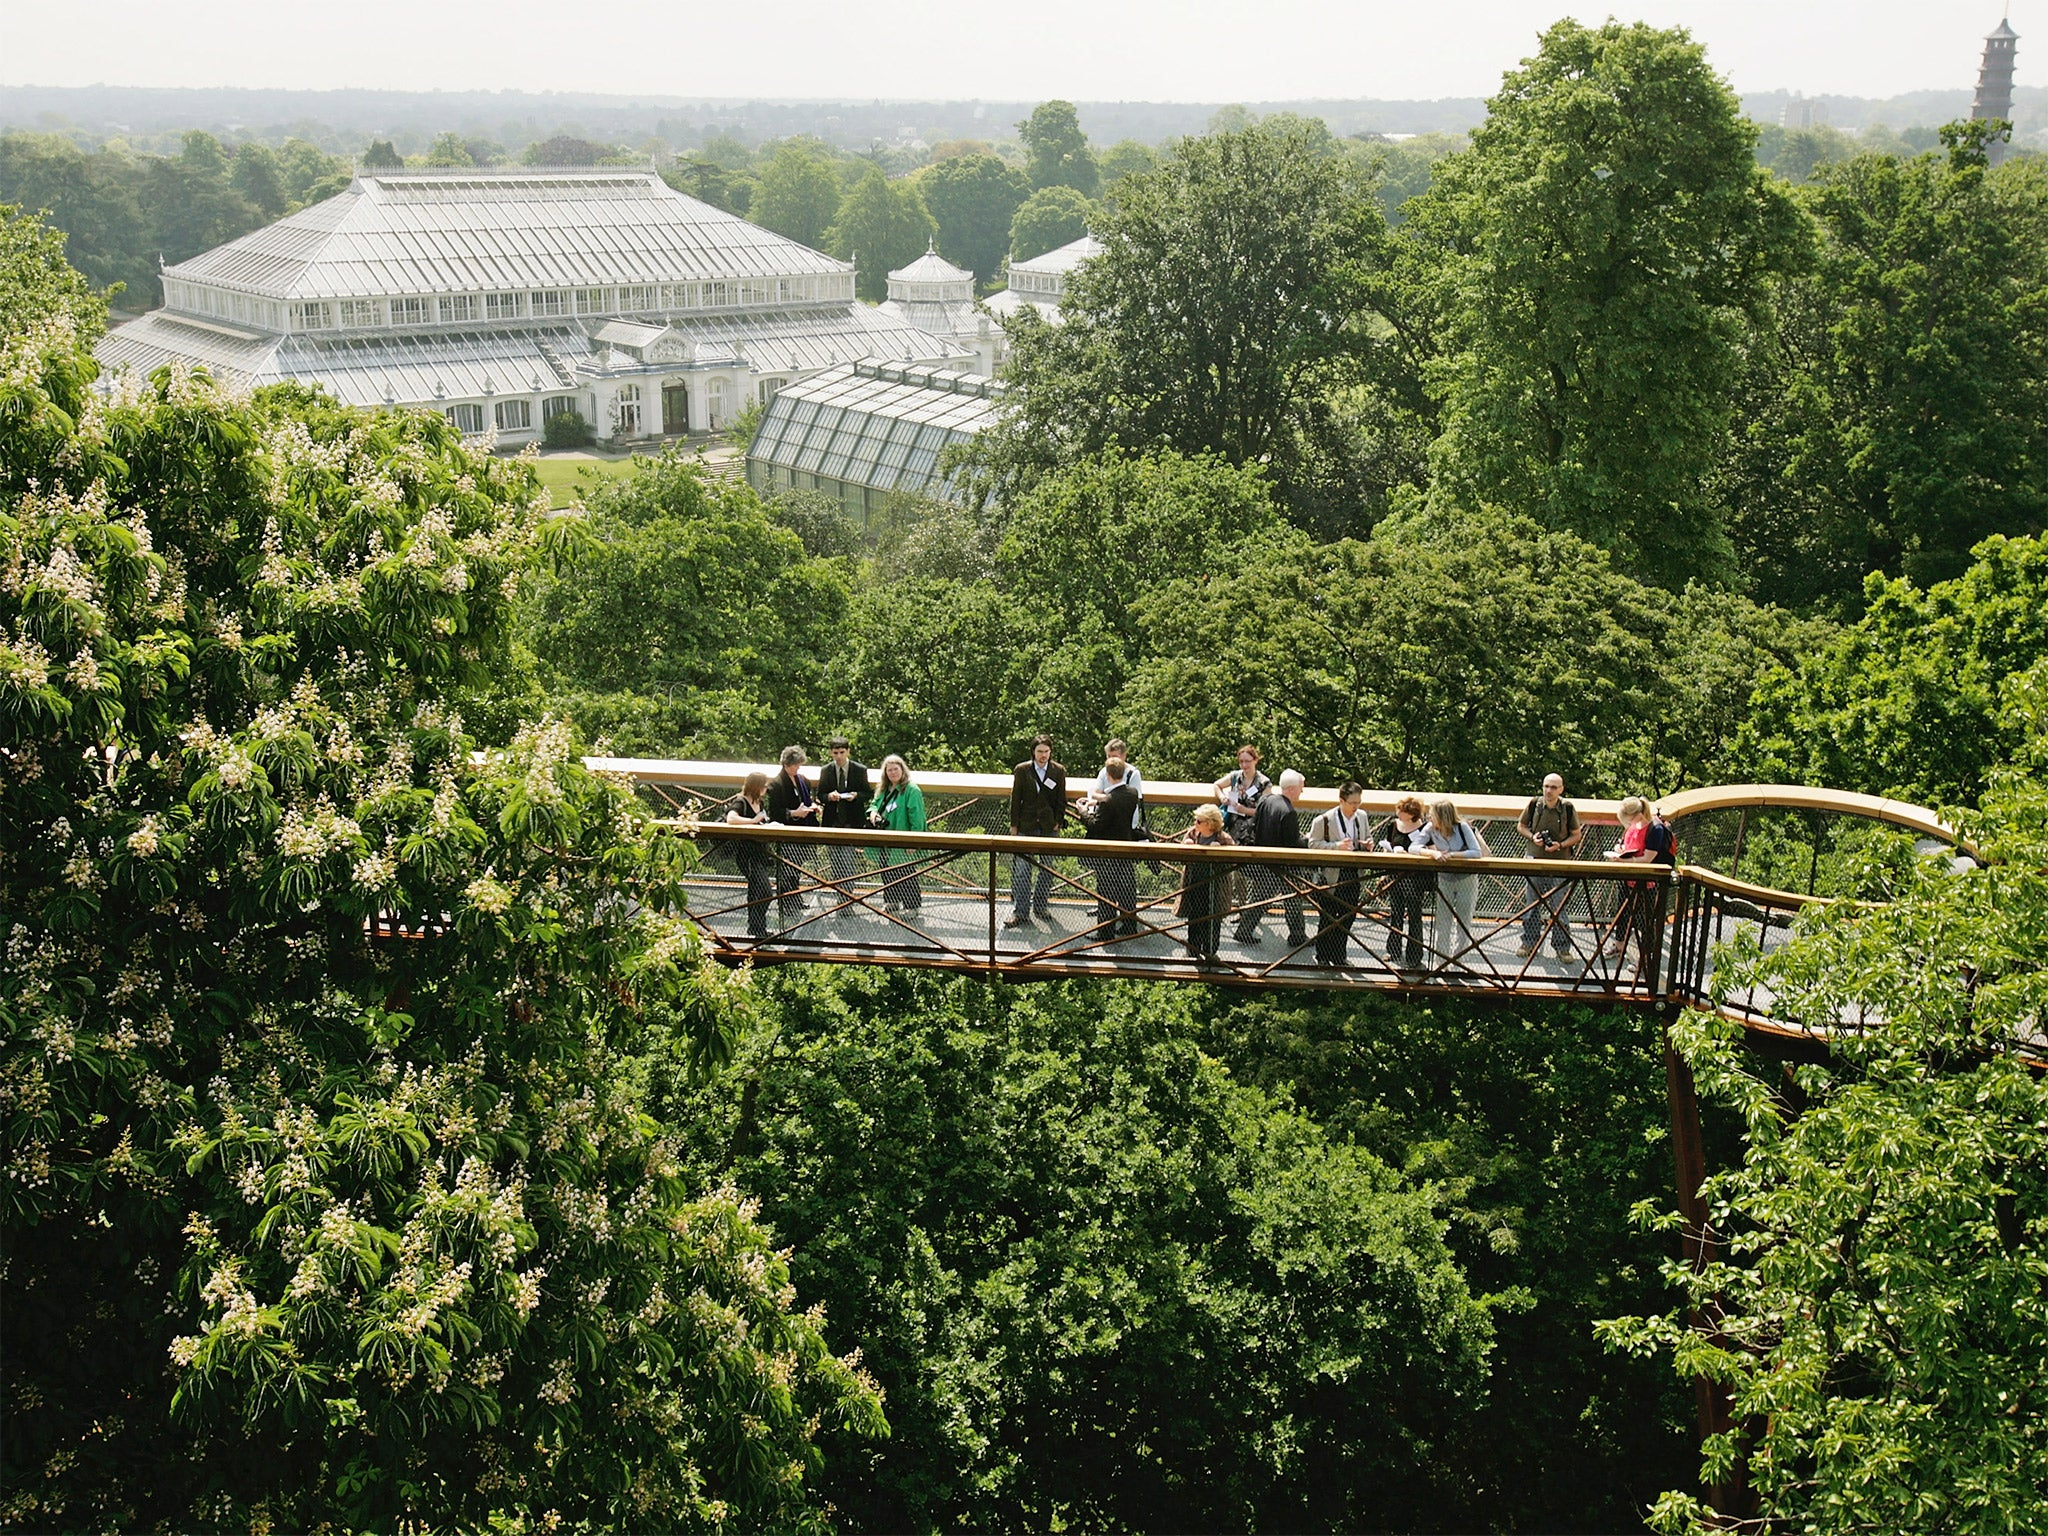 kew gardens dating Glasshouses at kew gardens— some dating from the mid 1800's—are world renowned the palm house, temperate house, princes of whales conservatory, alpine house, evolution house and waterlily house are each uniquely designed and ideally suited to their task.